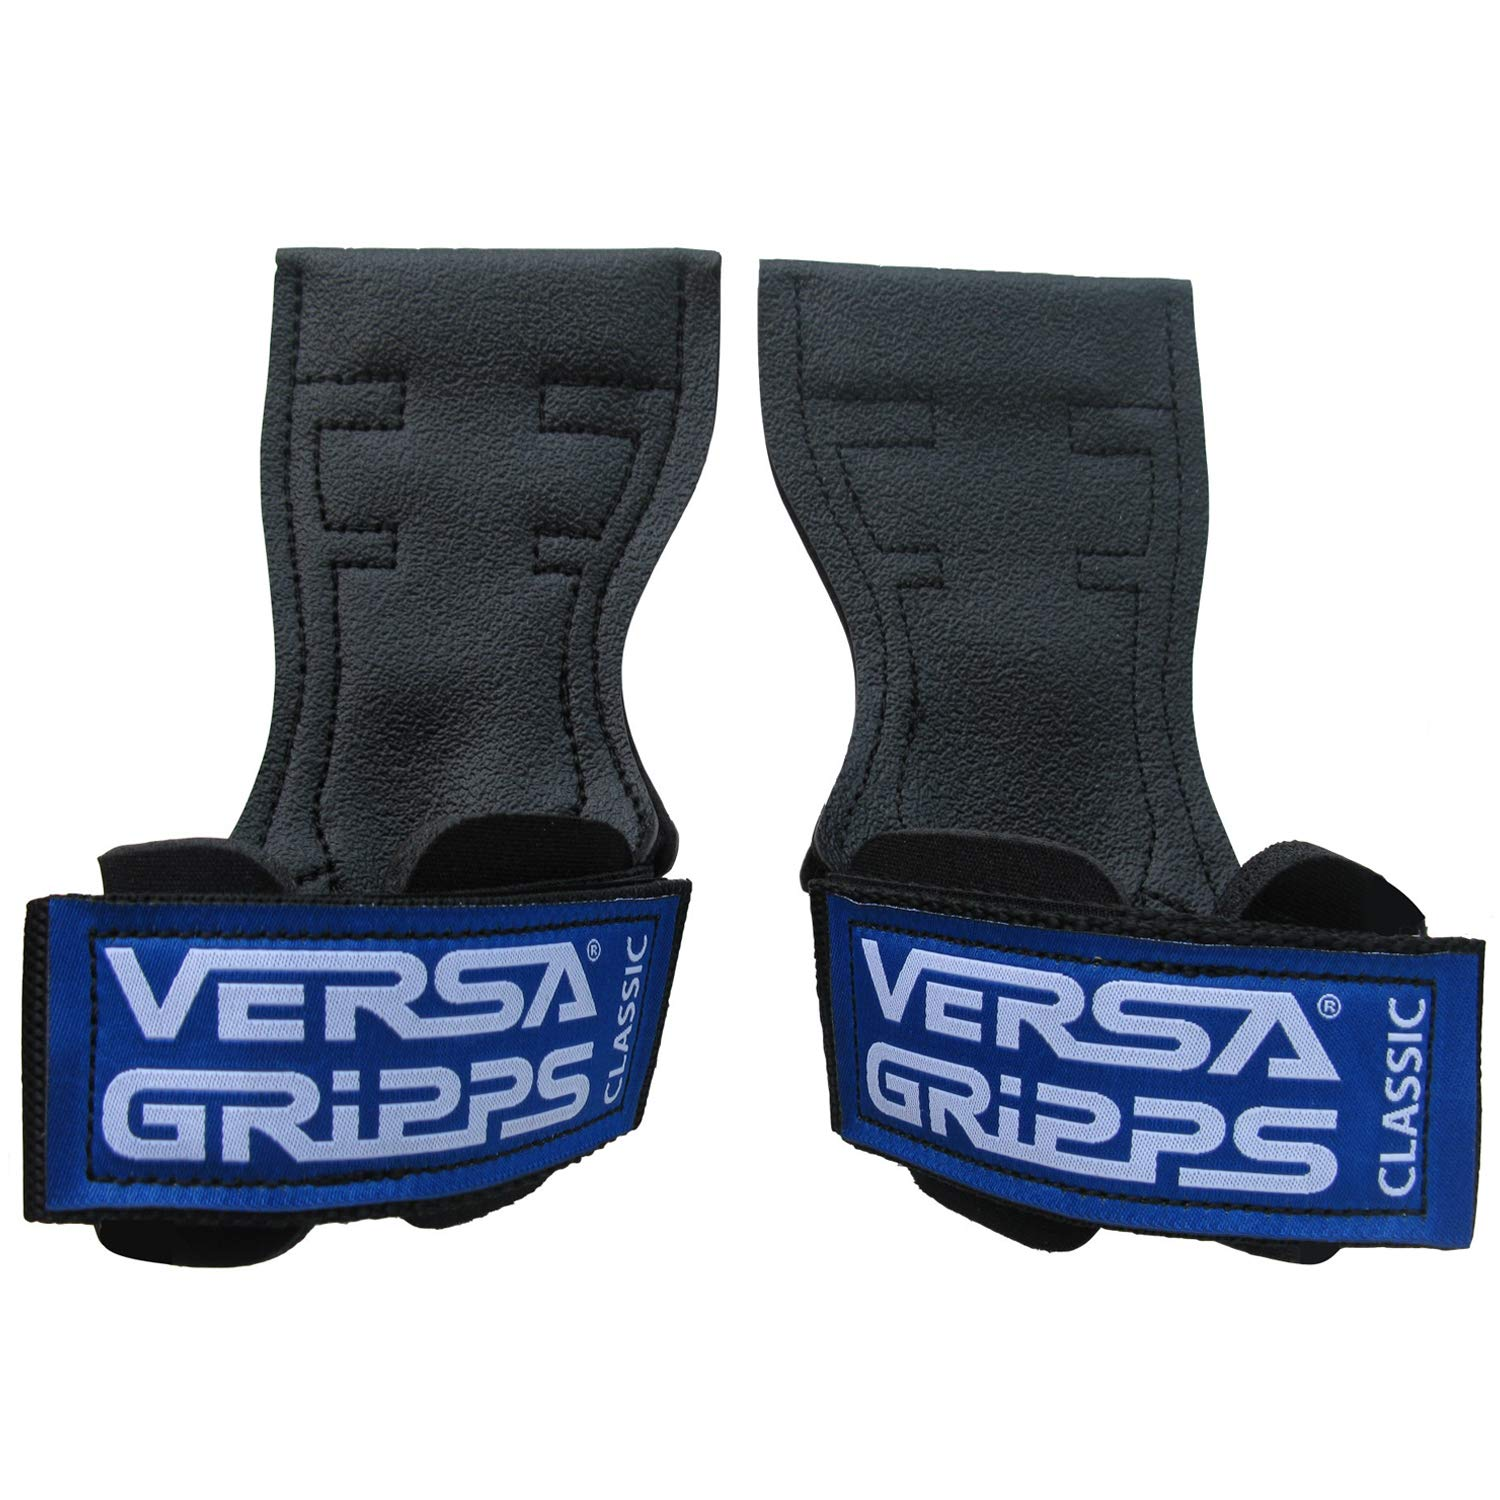 Versa Gripps Classic Authentic. The Best Training Accessory in The World. Made in The USA (Blue Label, X-Small)